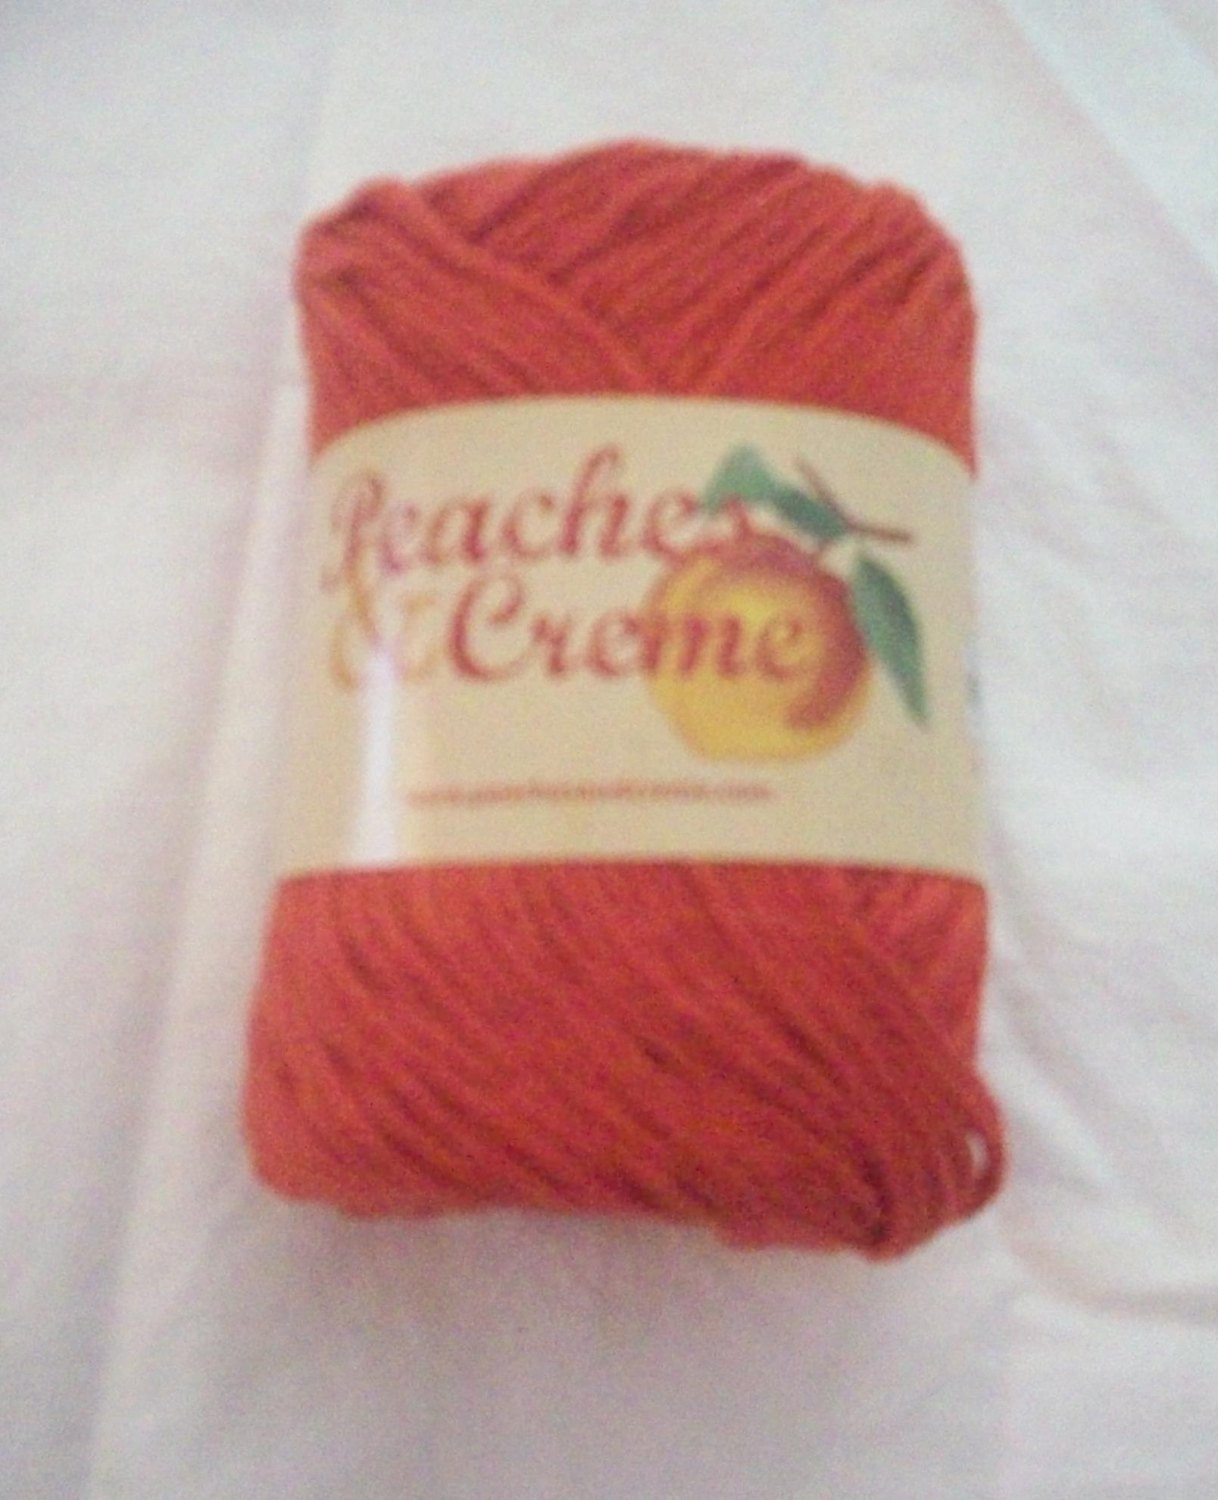 Peaches and Cream Cotton Yarn Awesome Peaches & Creme Cotton Yarn Earthy orange 2 5 Oz 70 9 G Of Brilliant 43 Pictures Peaches and Cream Cotton Yarn